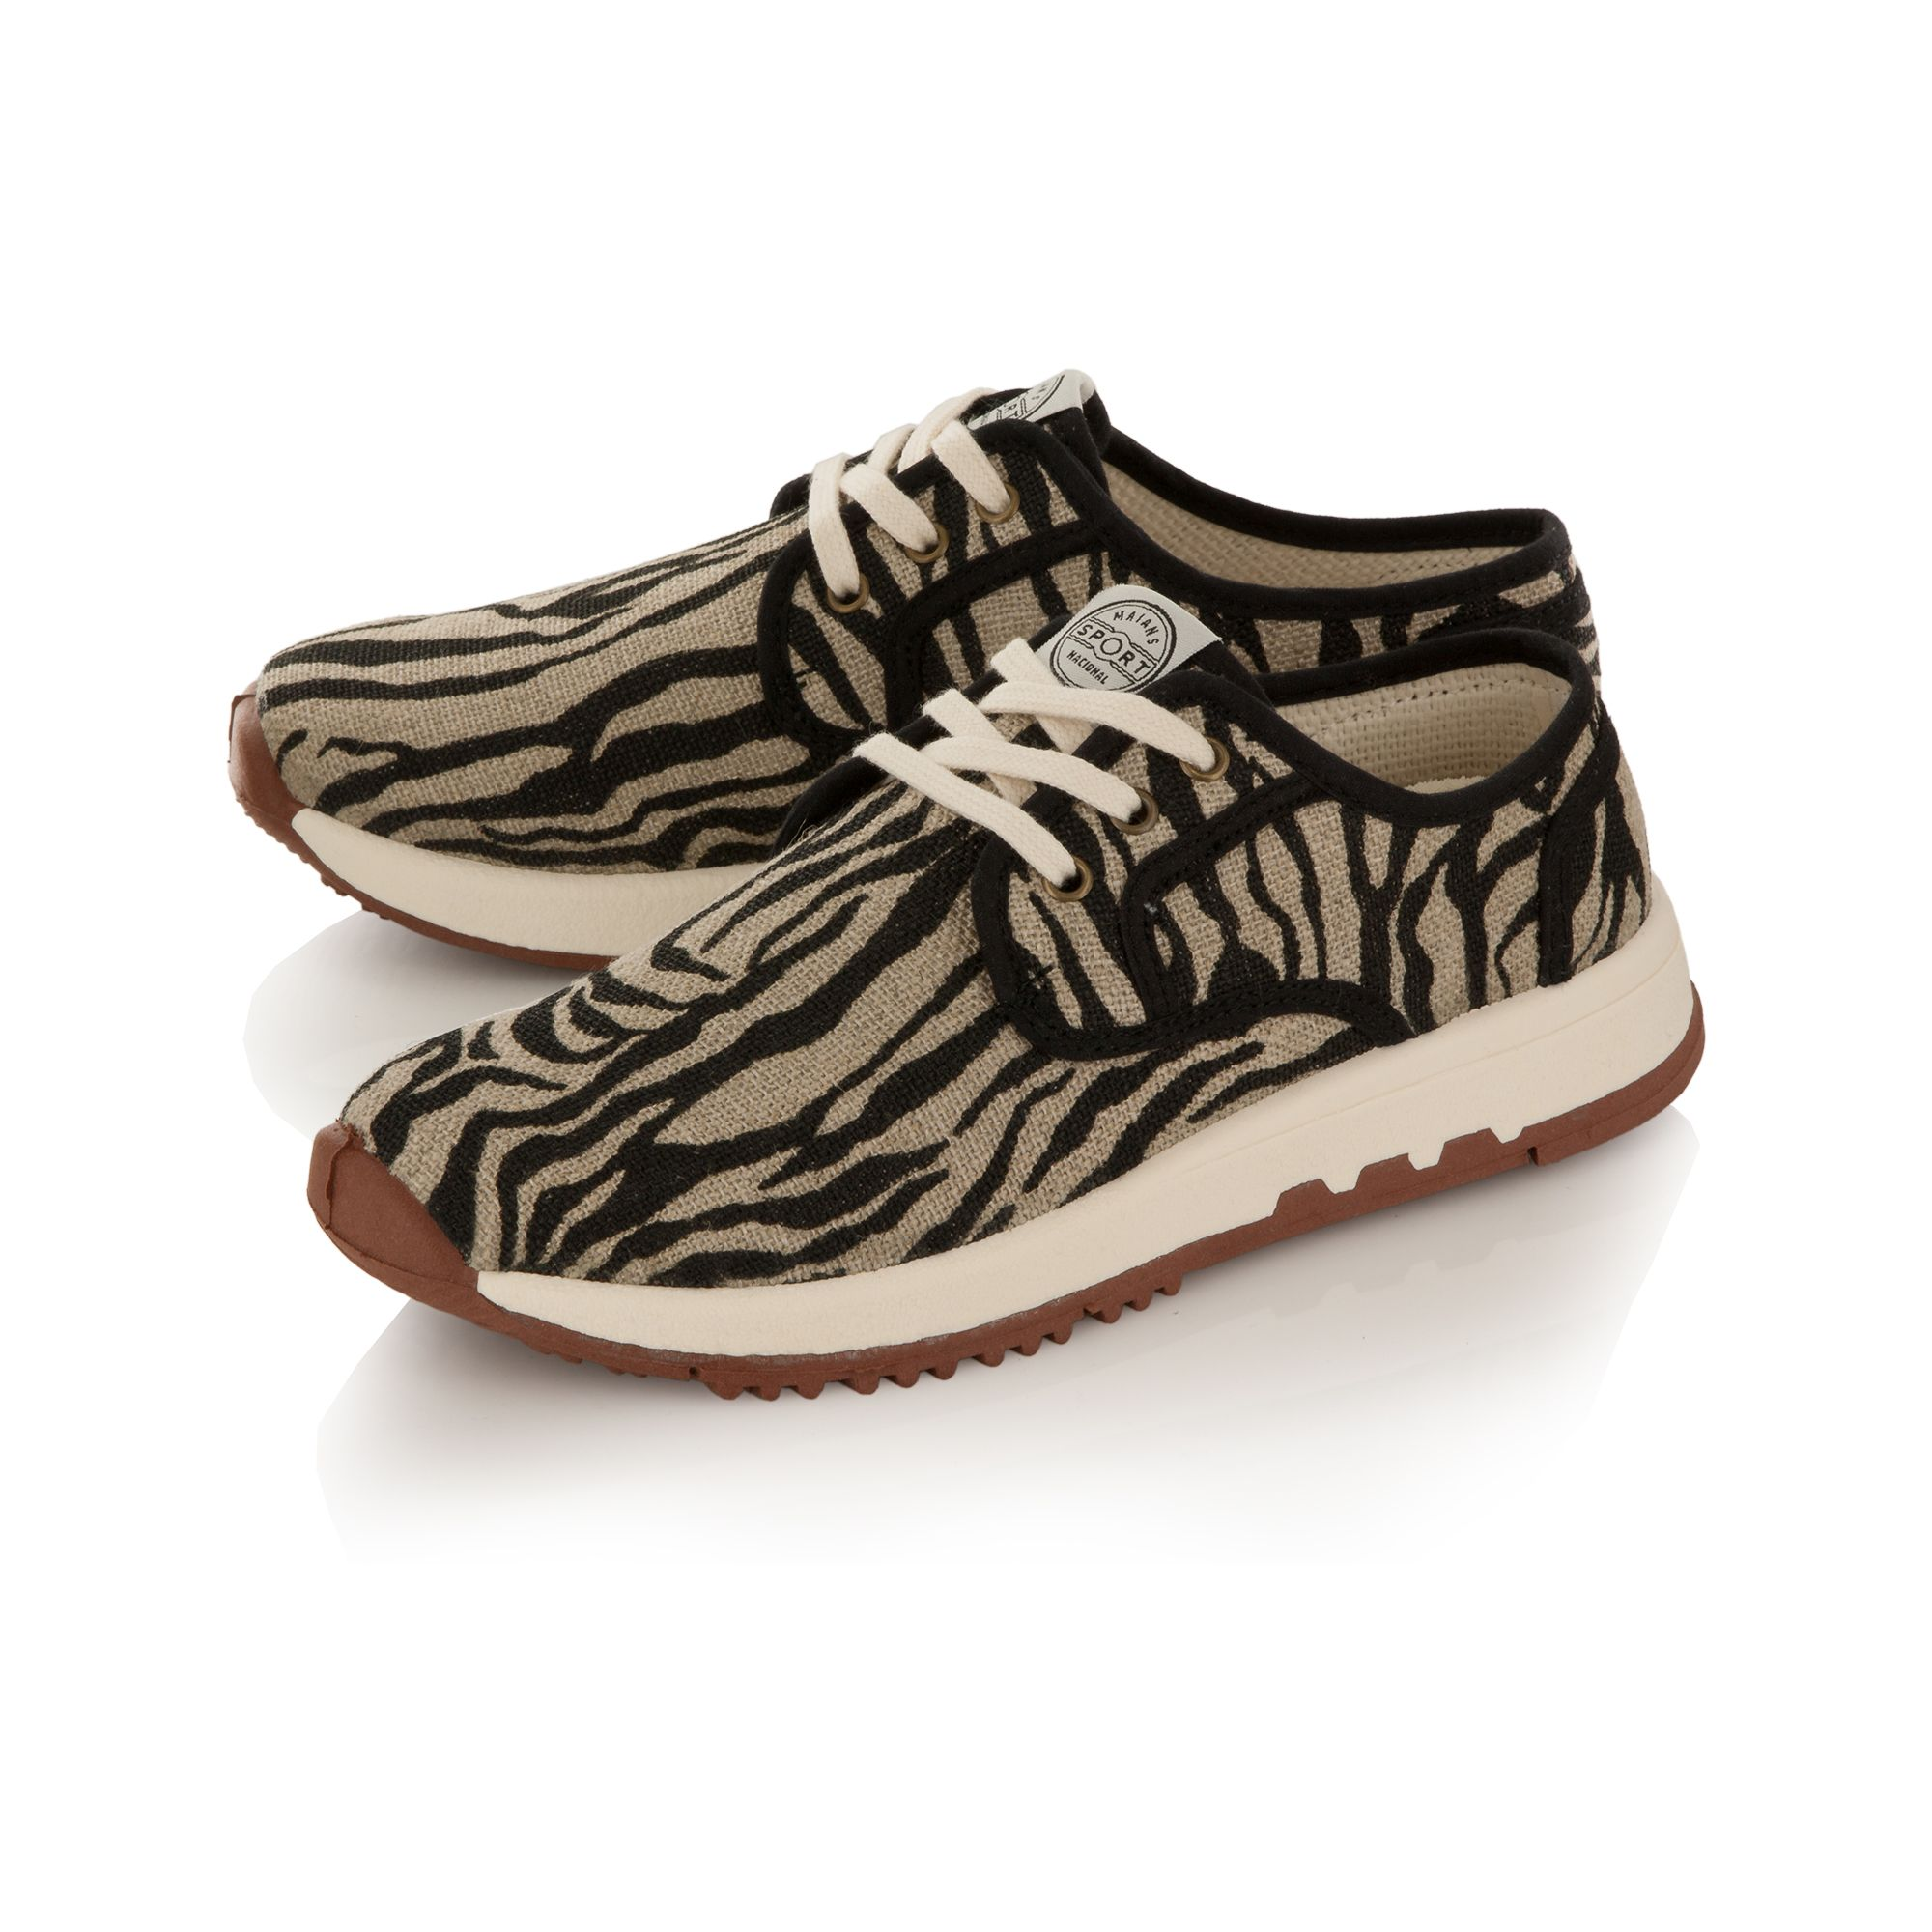 Zebra canvas runner shoes